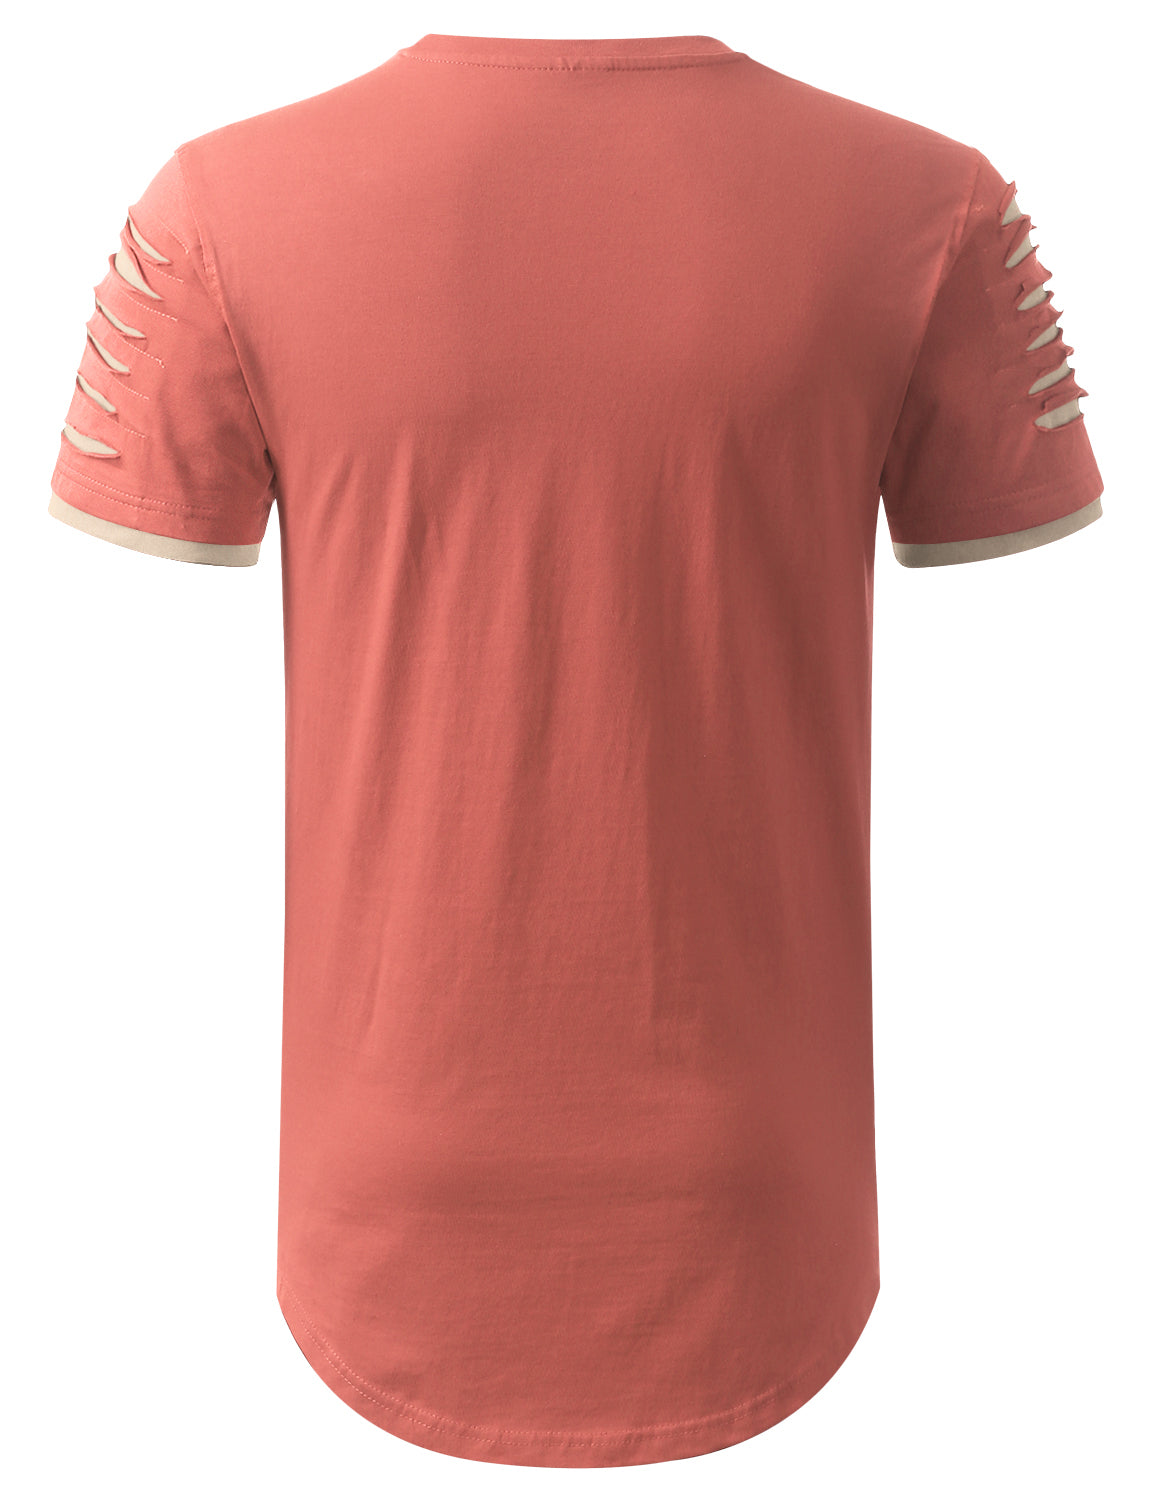 DUSTYPINK Ripped Zip Longline Crewneck T-shirts - URBANCREWS